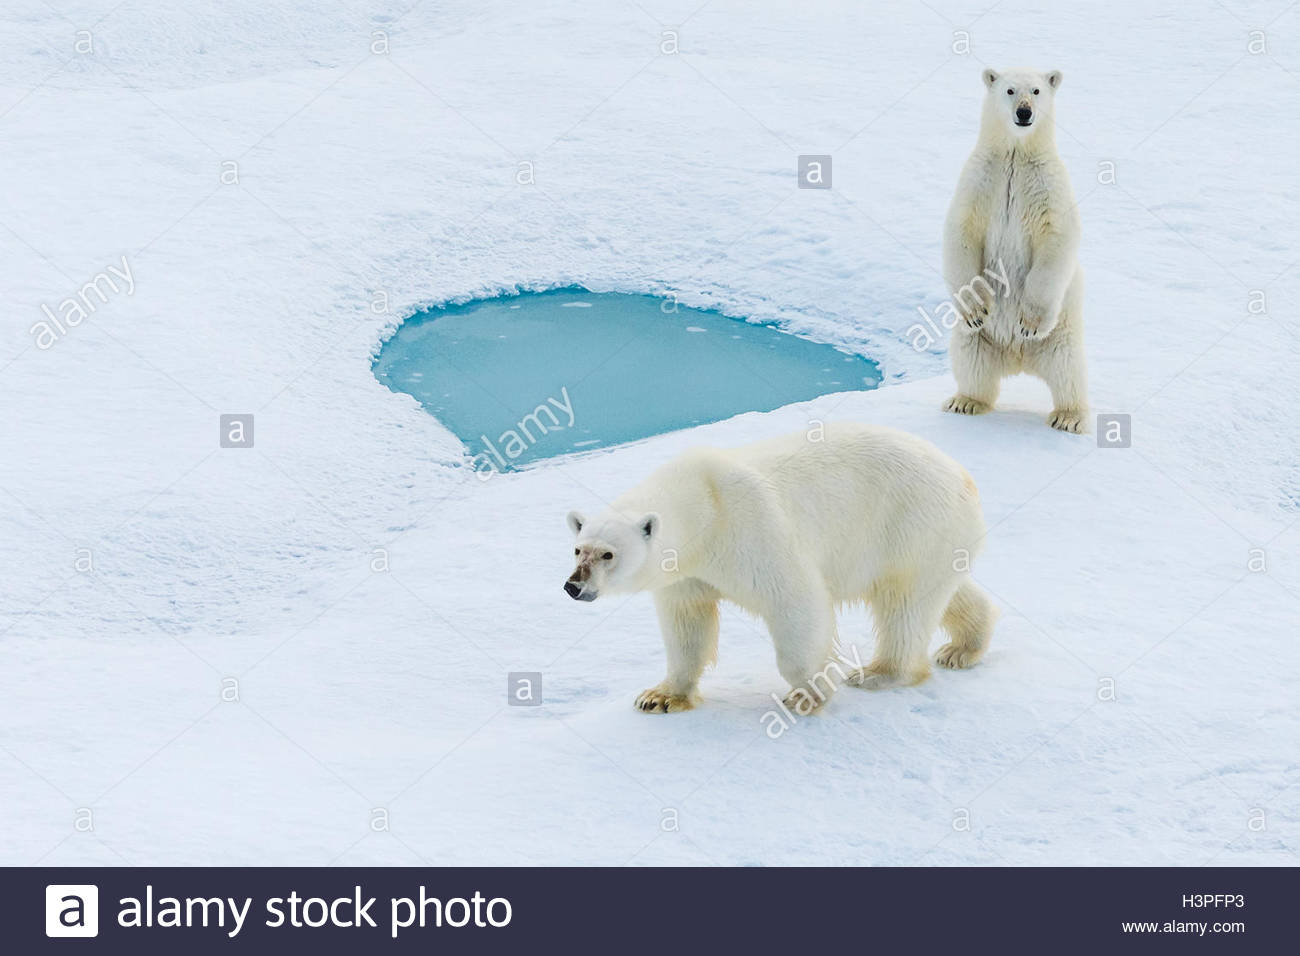 A standing polar bear cub and its mother (Ursus maritimus) wander across pack ice in the Canadian Arctic. - Stock Image